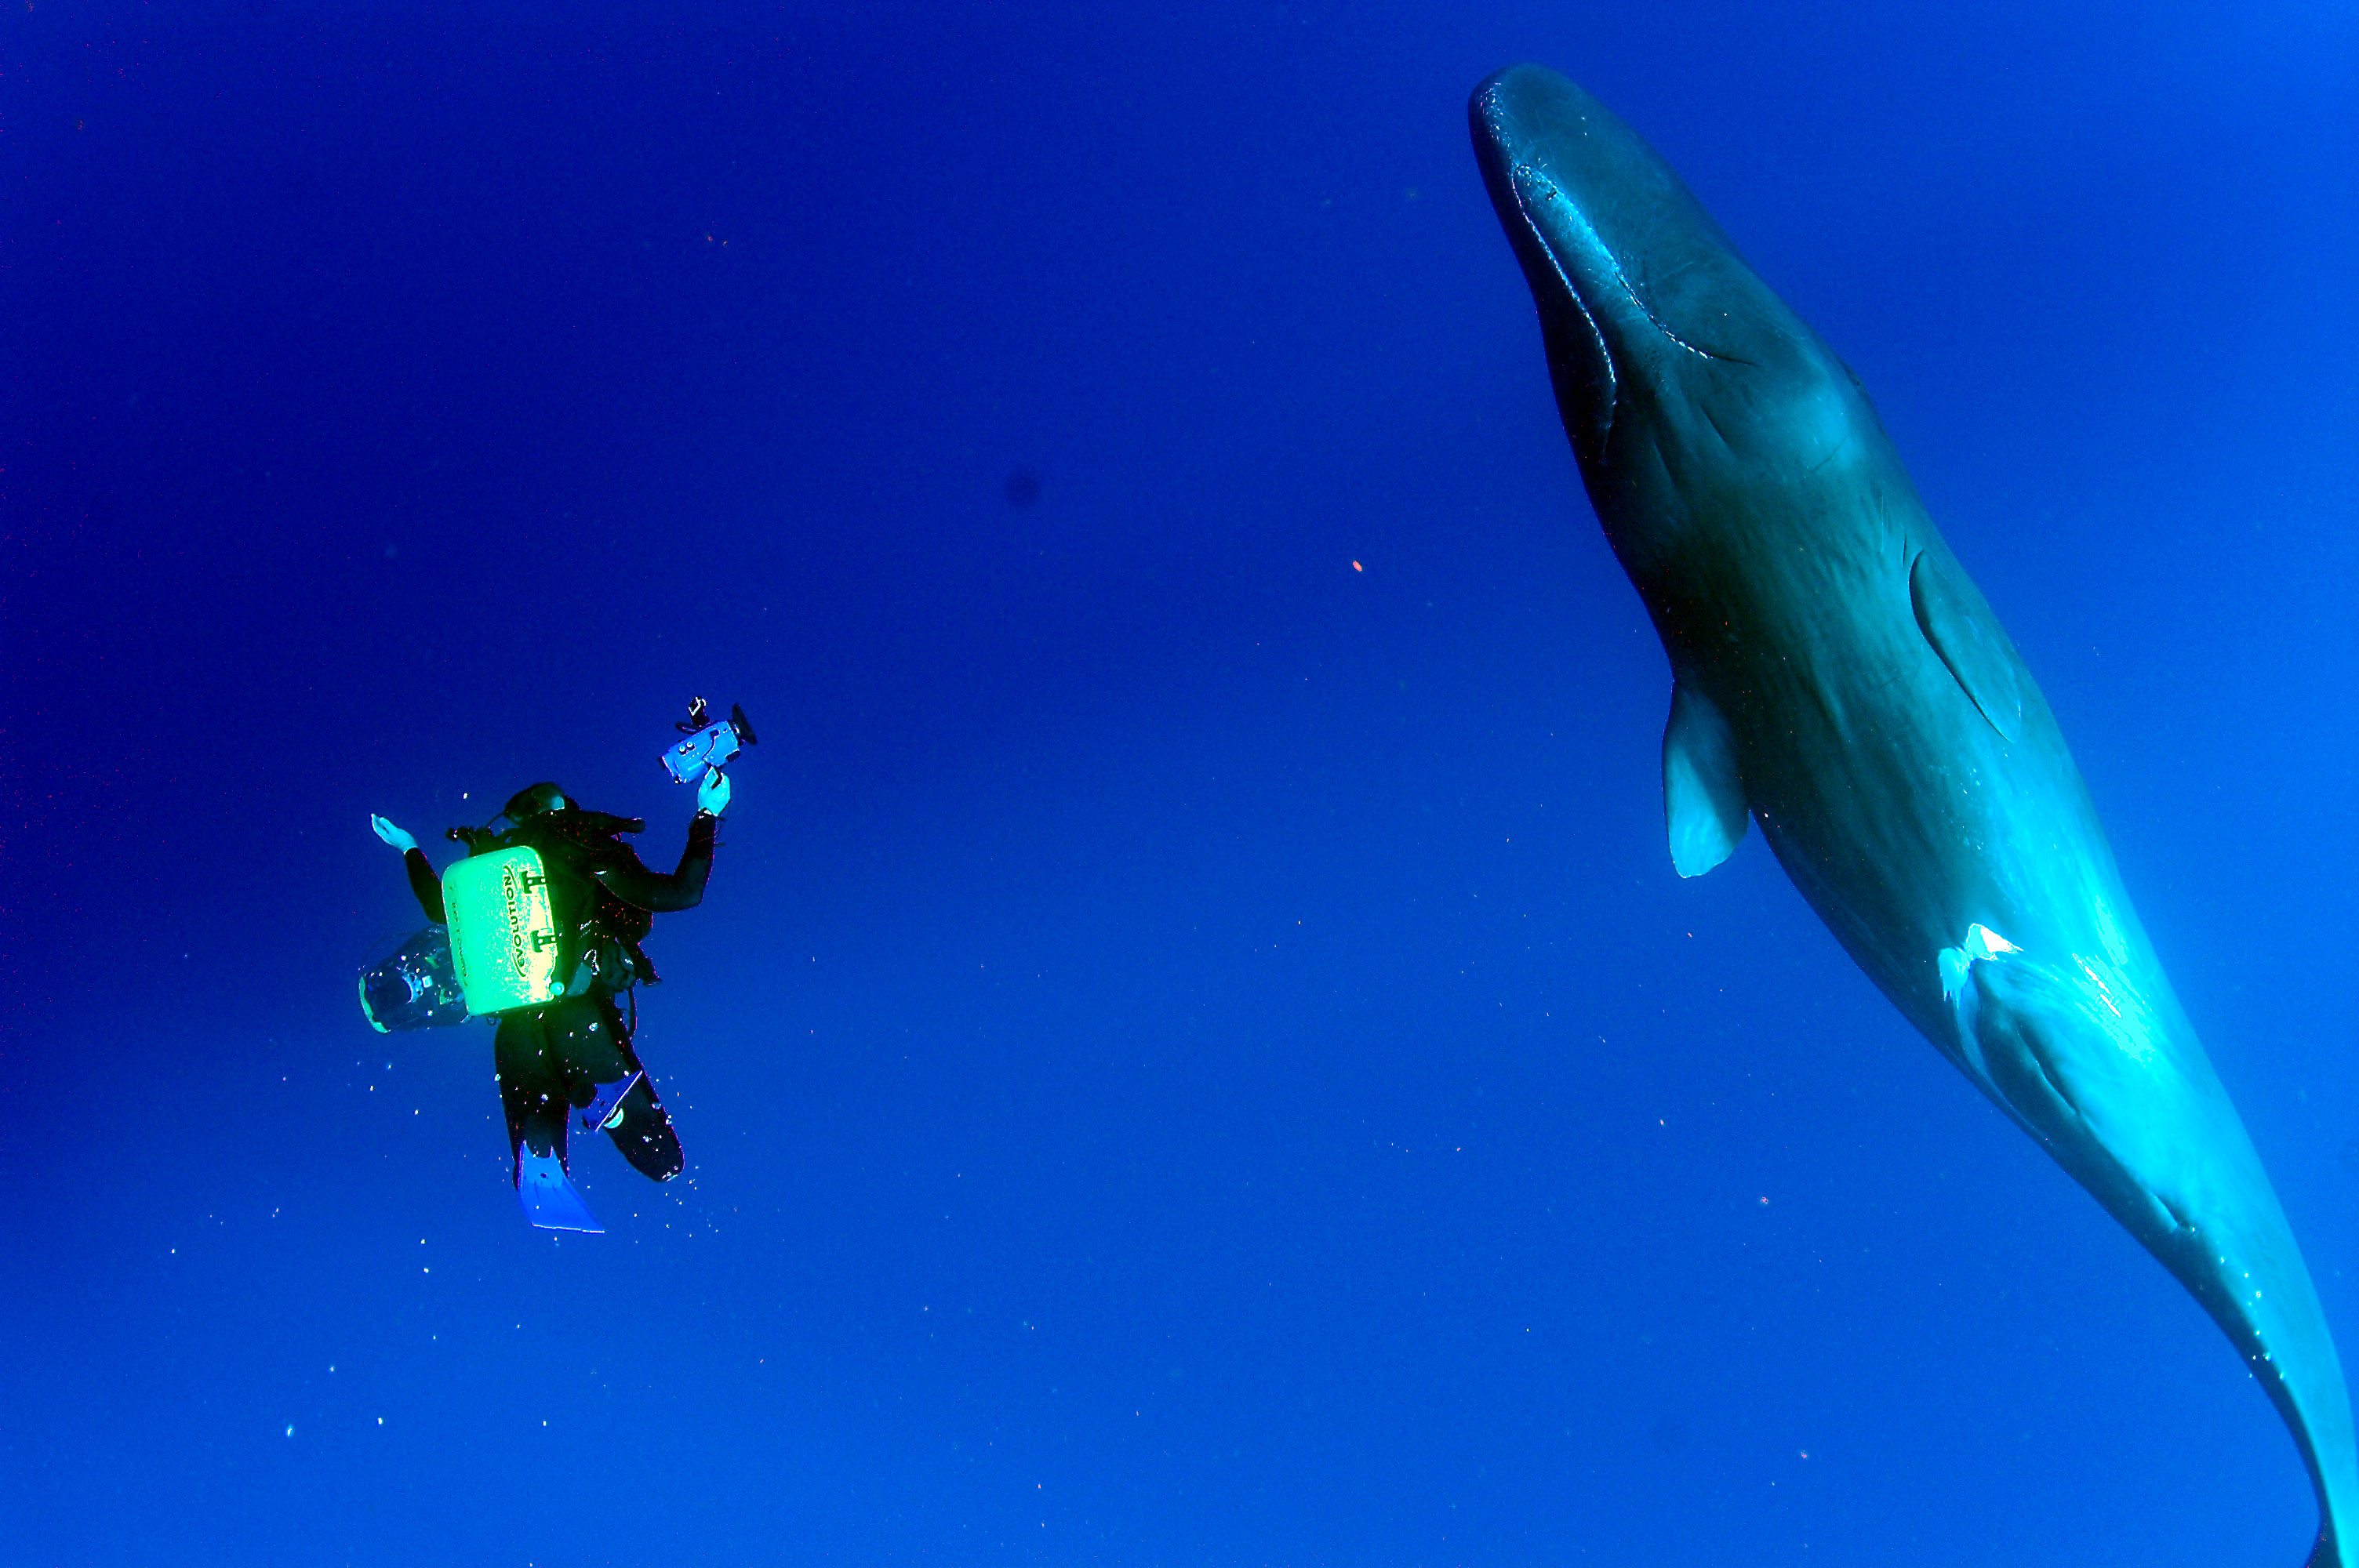 2007 Dominca  diving with Forest Gaithier, John Chatterton and Jeff Bozanic